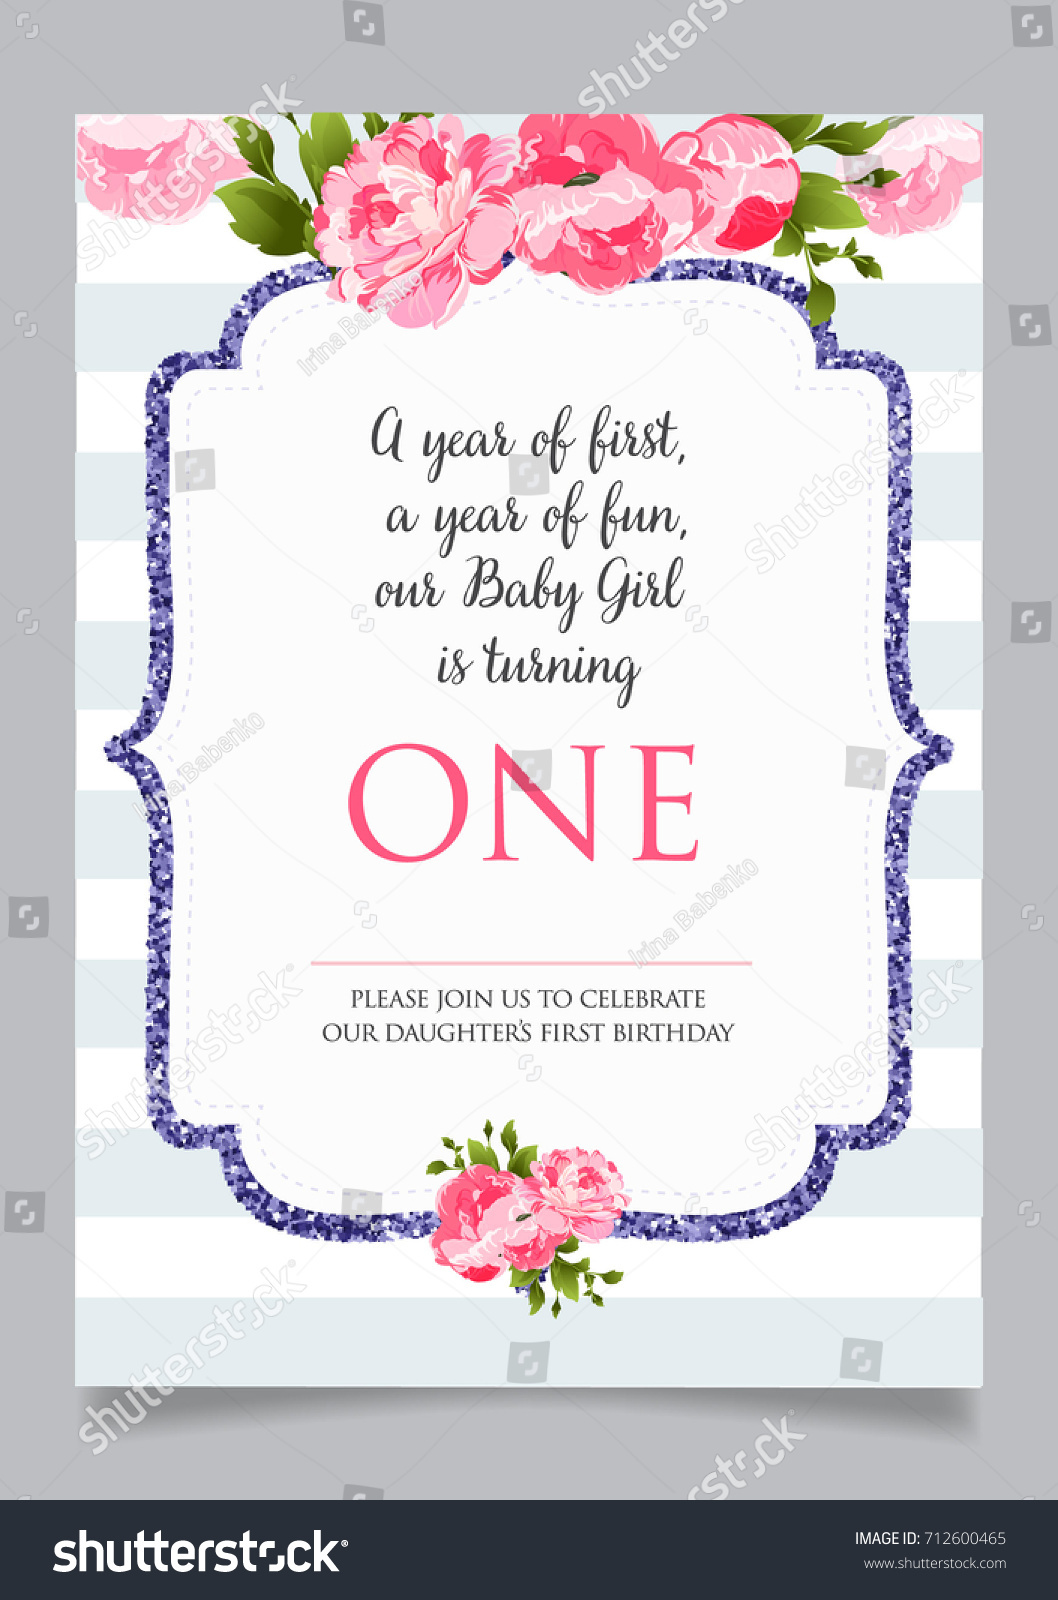 printable first birthday invitations - Acur.lunamedia.co